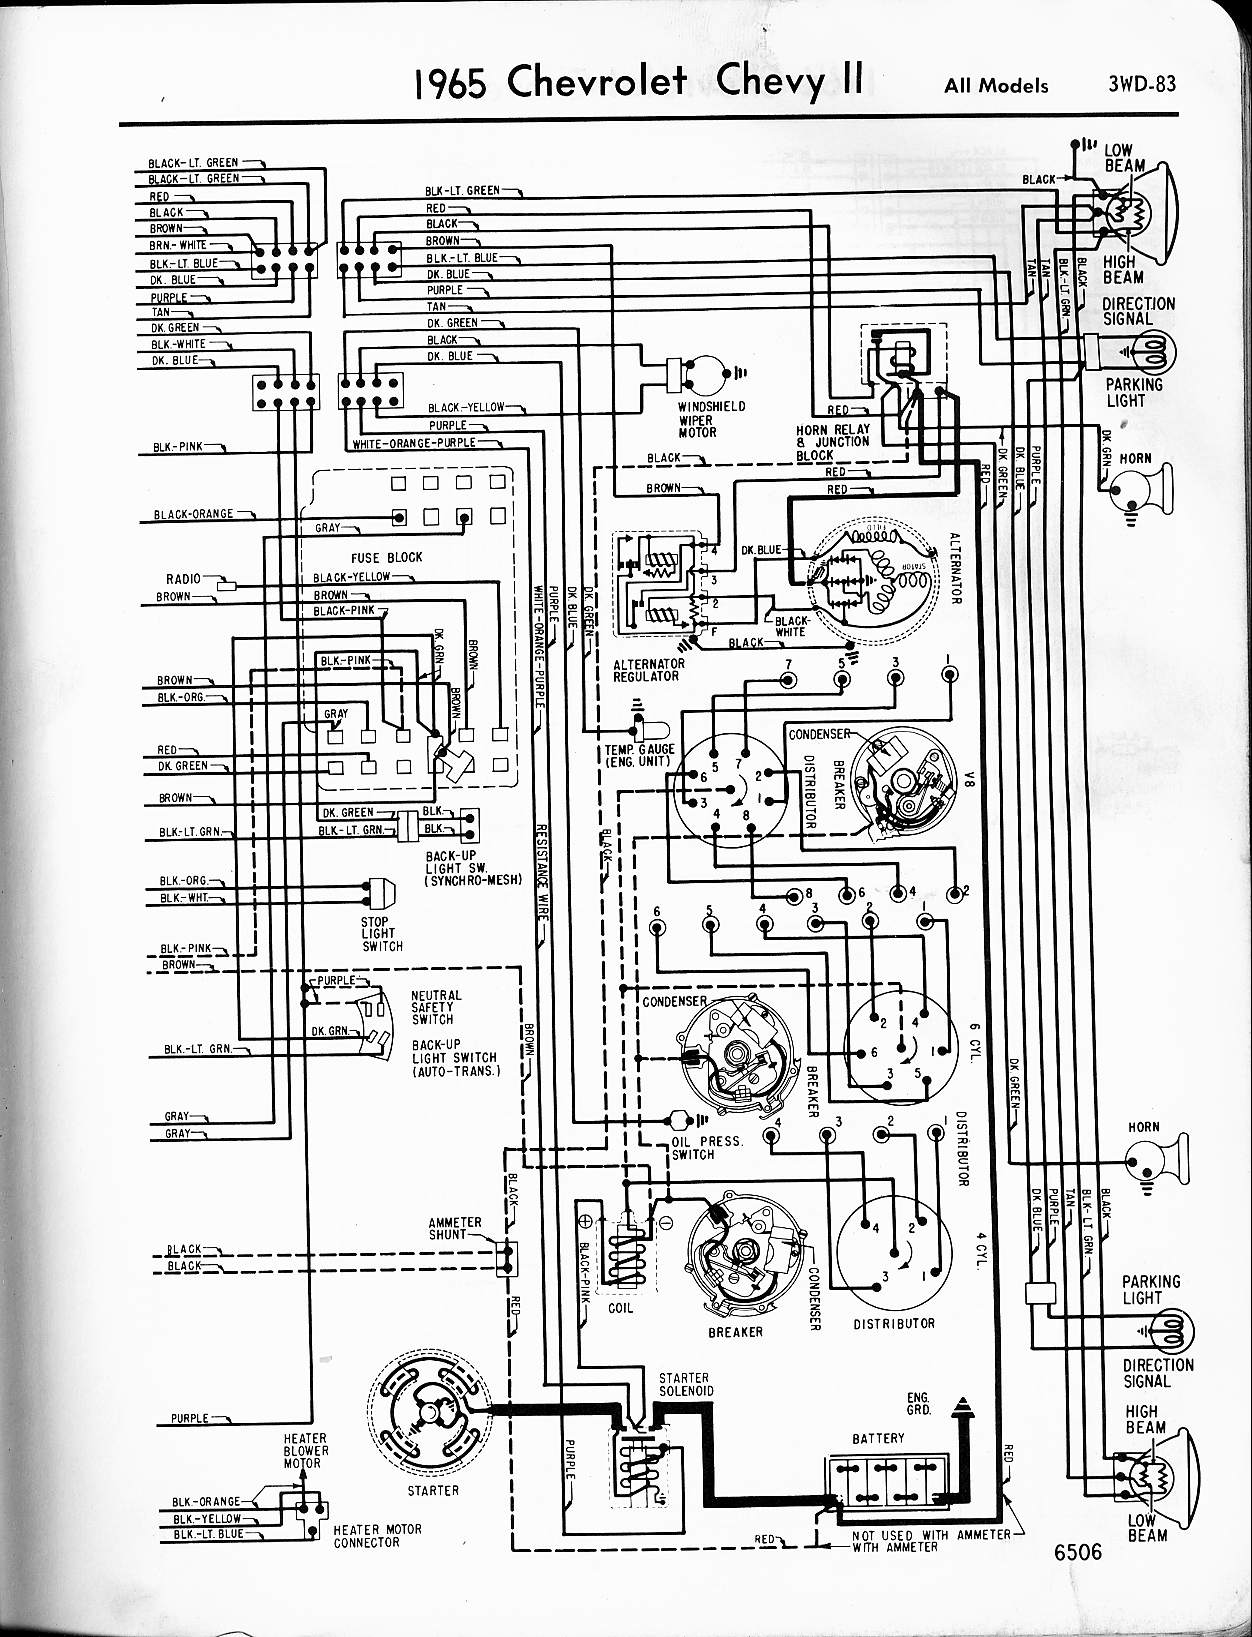 MWireChev65_3WD 083 66 chevelle wiring schematics free download diagram schematic 65 comet wiring harness at gsmportal.co